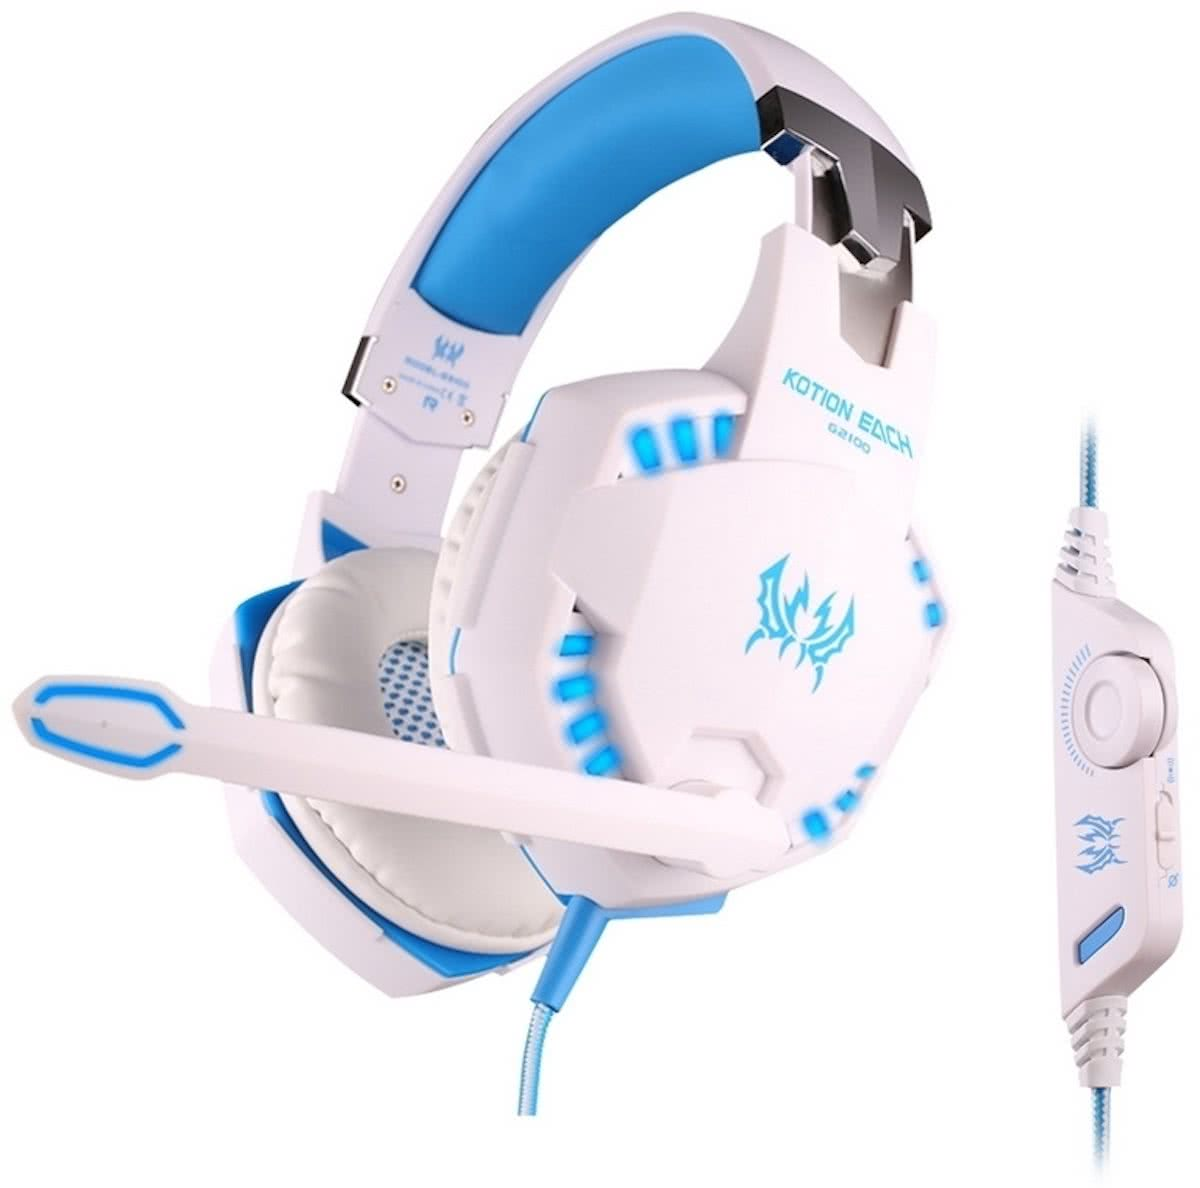 KOTION EACH G2100 Vibration functie Stereo Bass Gaming Headset met Mic & LED licht voor Computer, Kabel Length: 2.2mwit